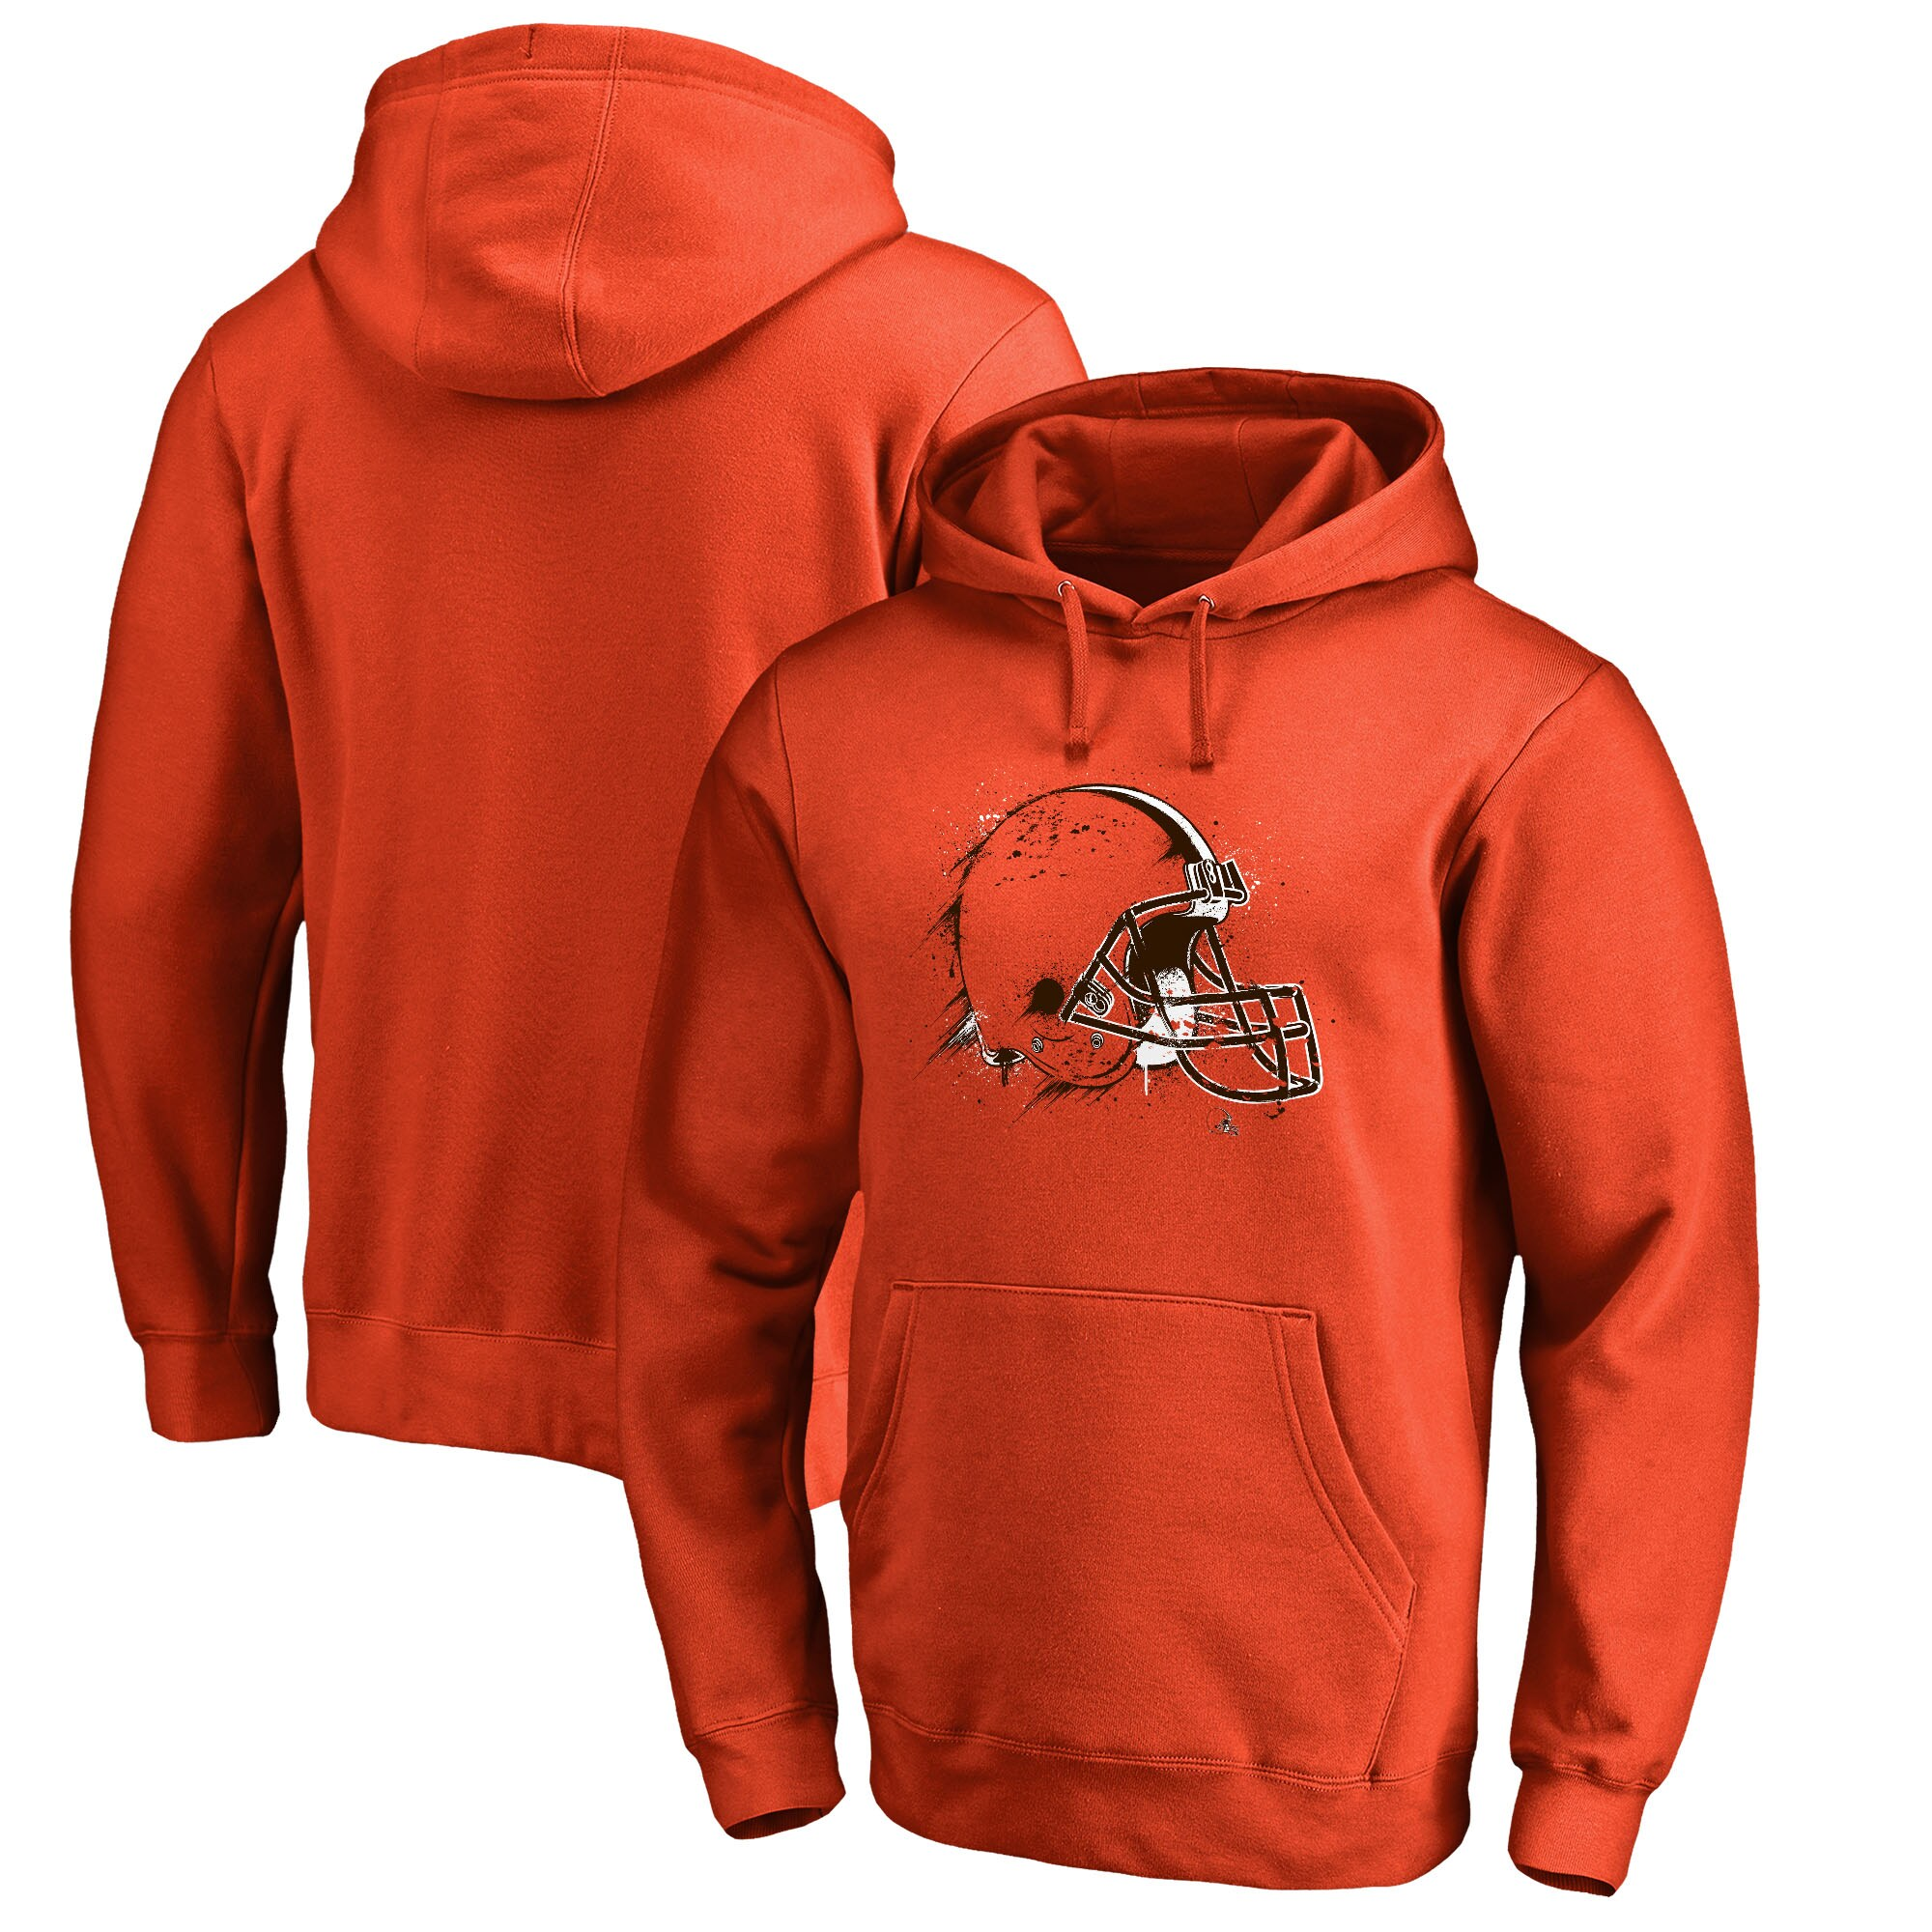 Cleveland Browns NFL Pro Line by Fanatics Branded Splatter Logo Pullover Hoodie - Orange